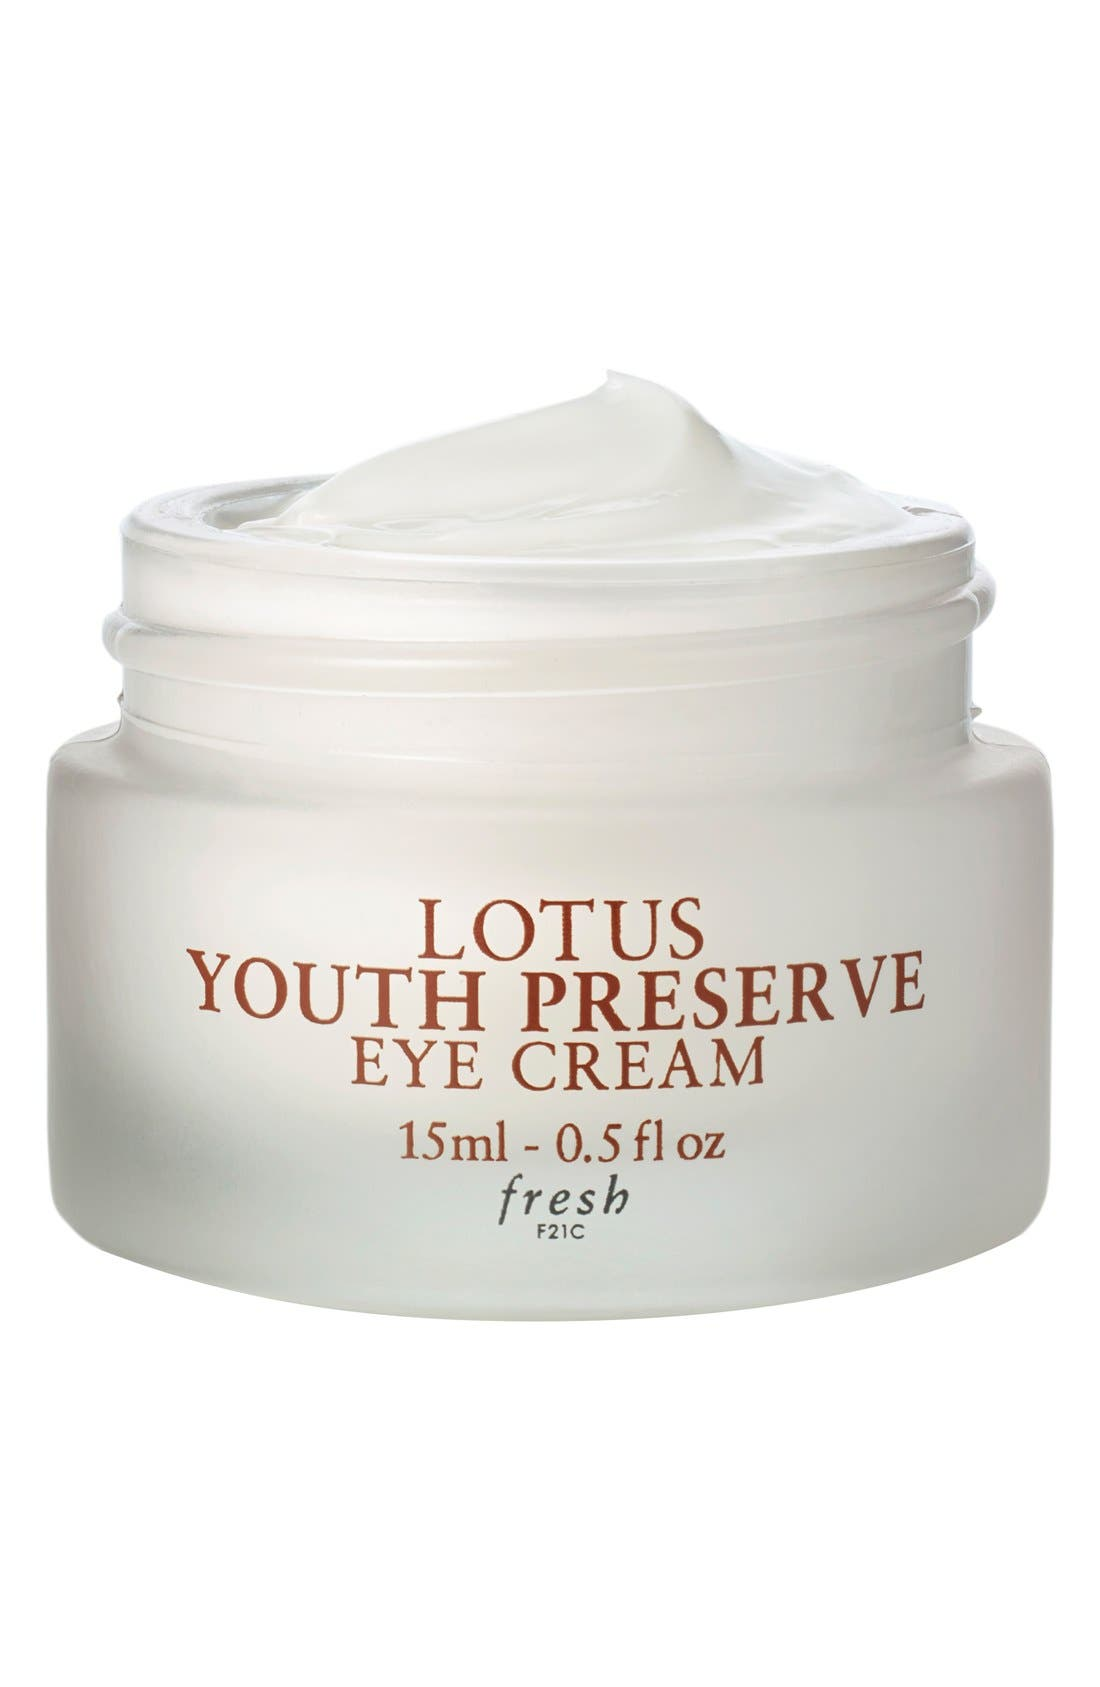 Lotus Youth Preserve Eye Cream,                             Alternate thumbnail 3, color,                             NO COLOR